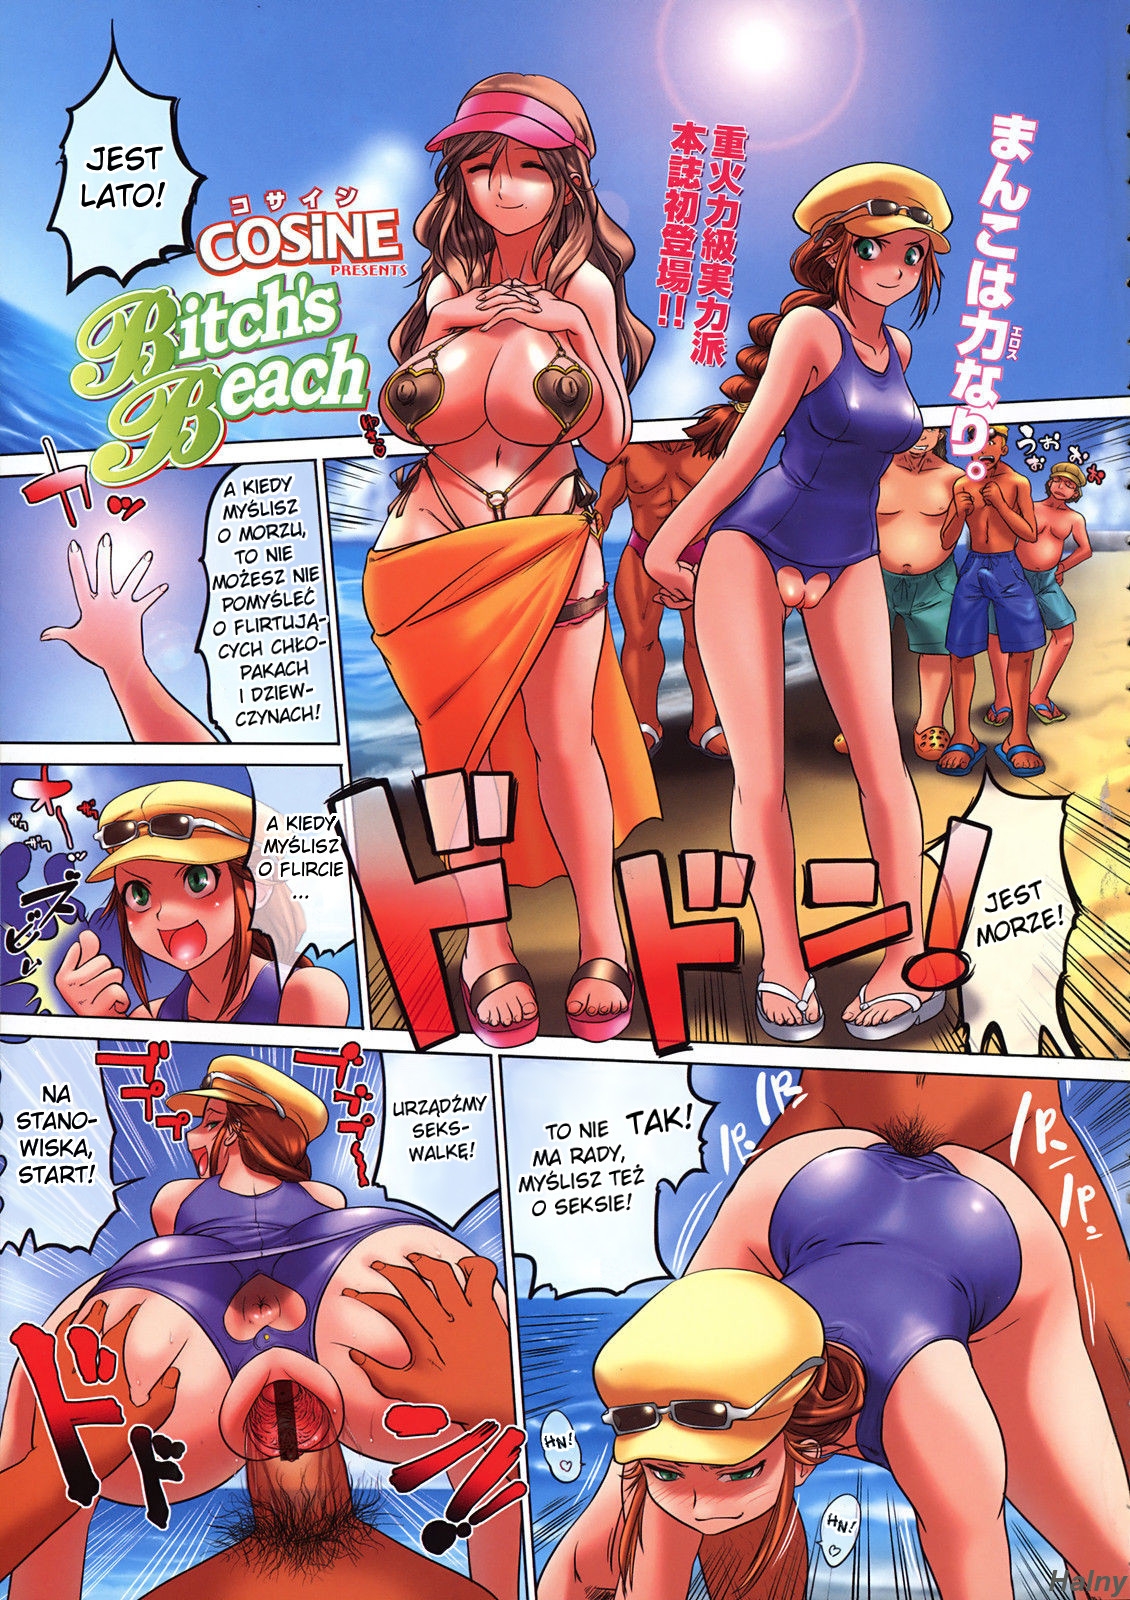 Bitch's Beach- Hentai porn comics 8 muses